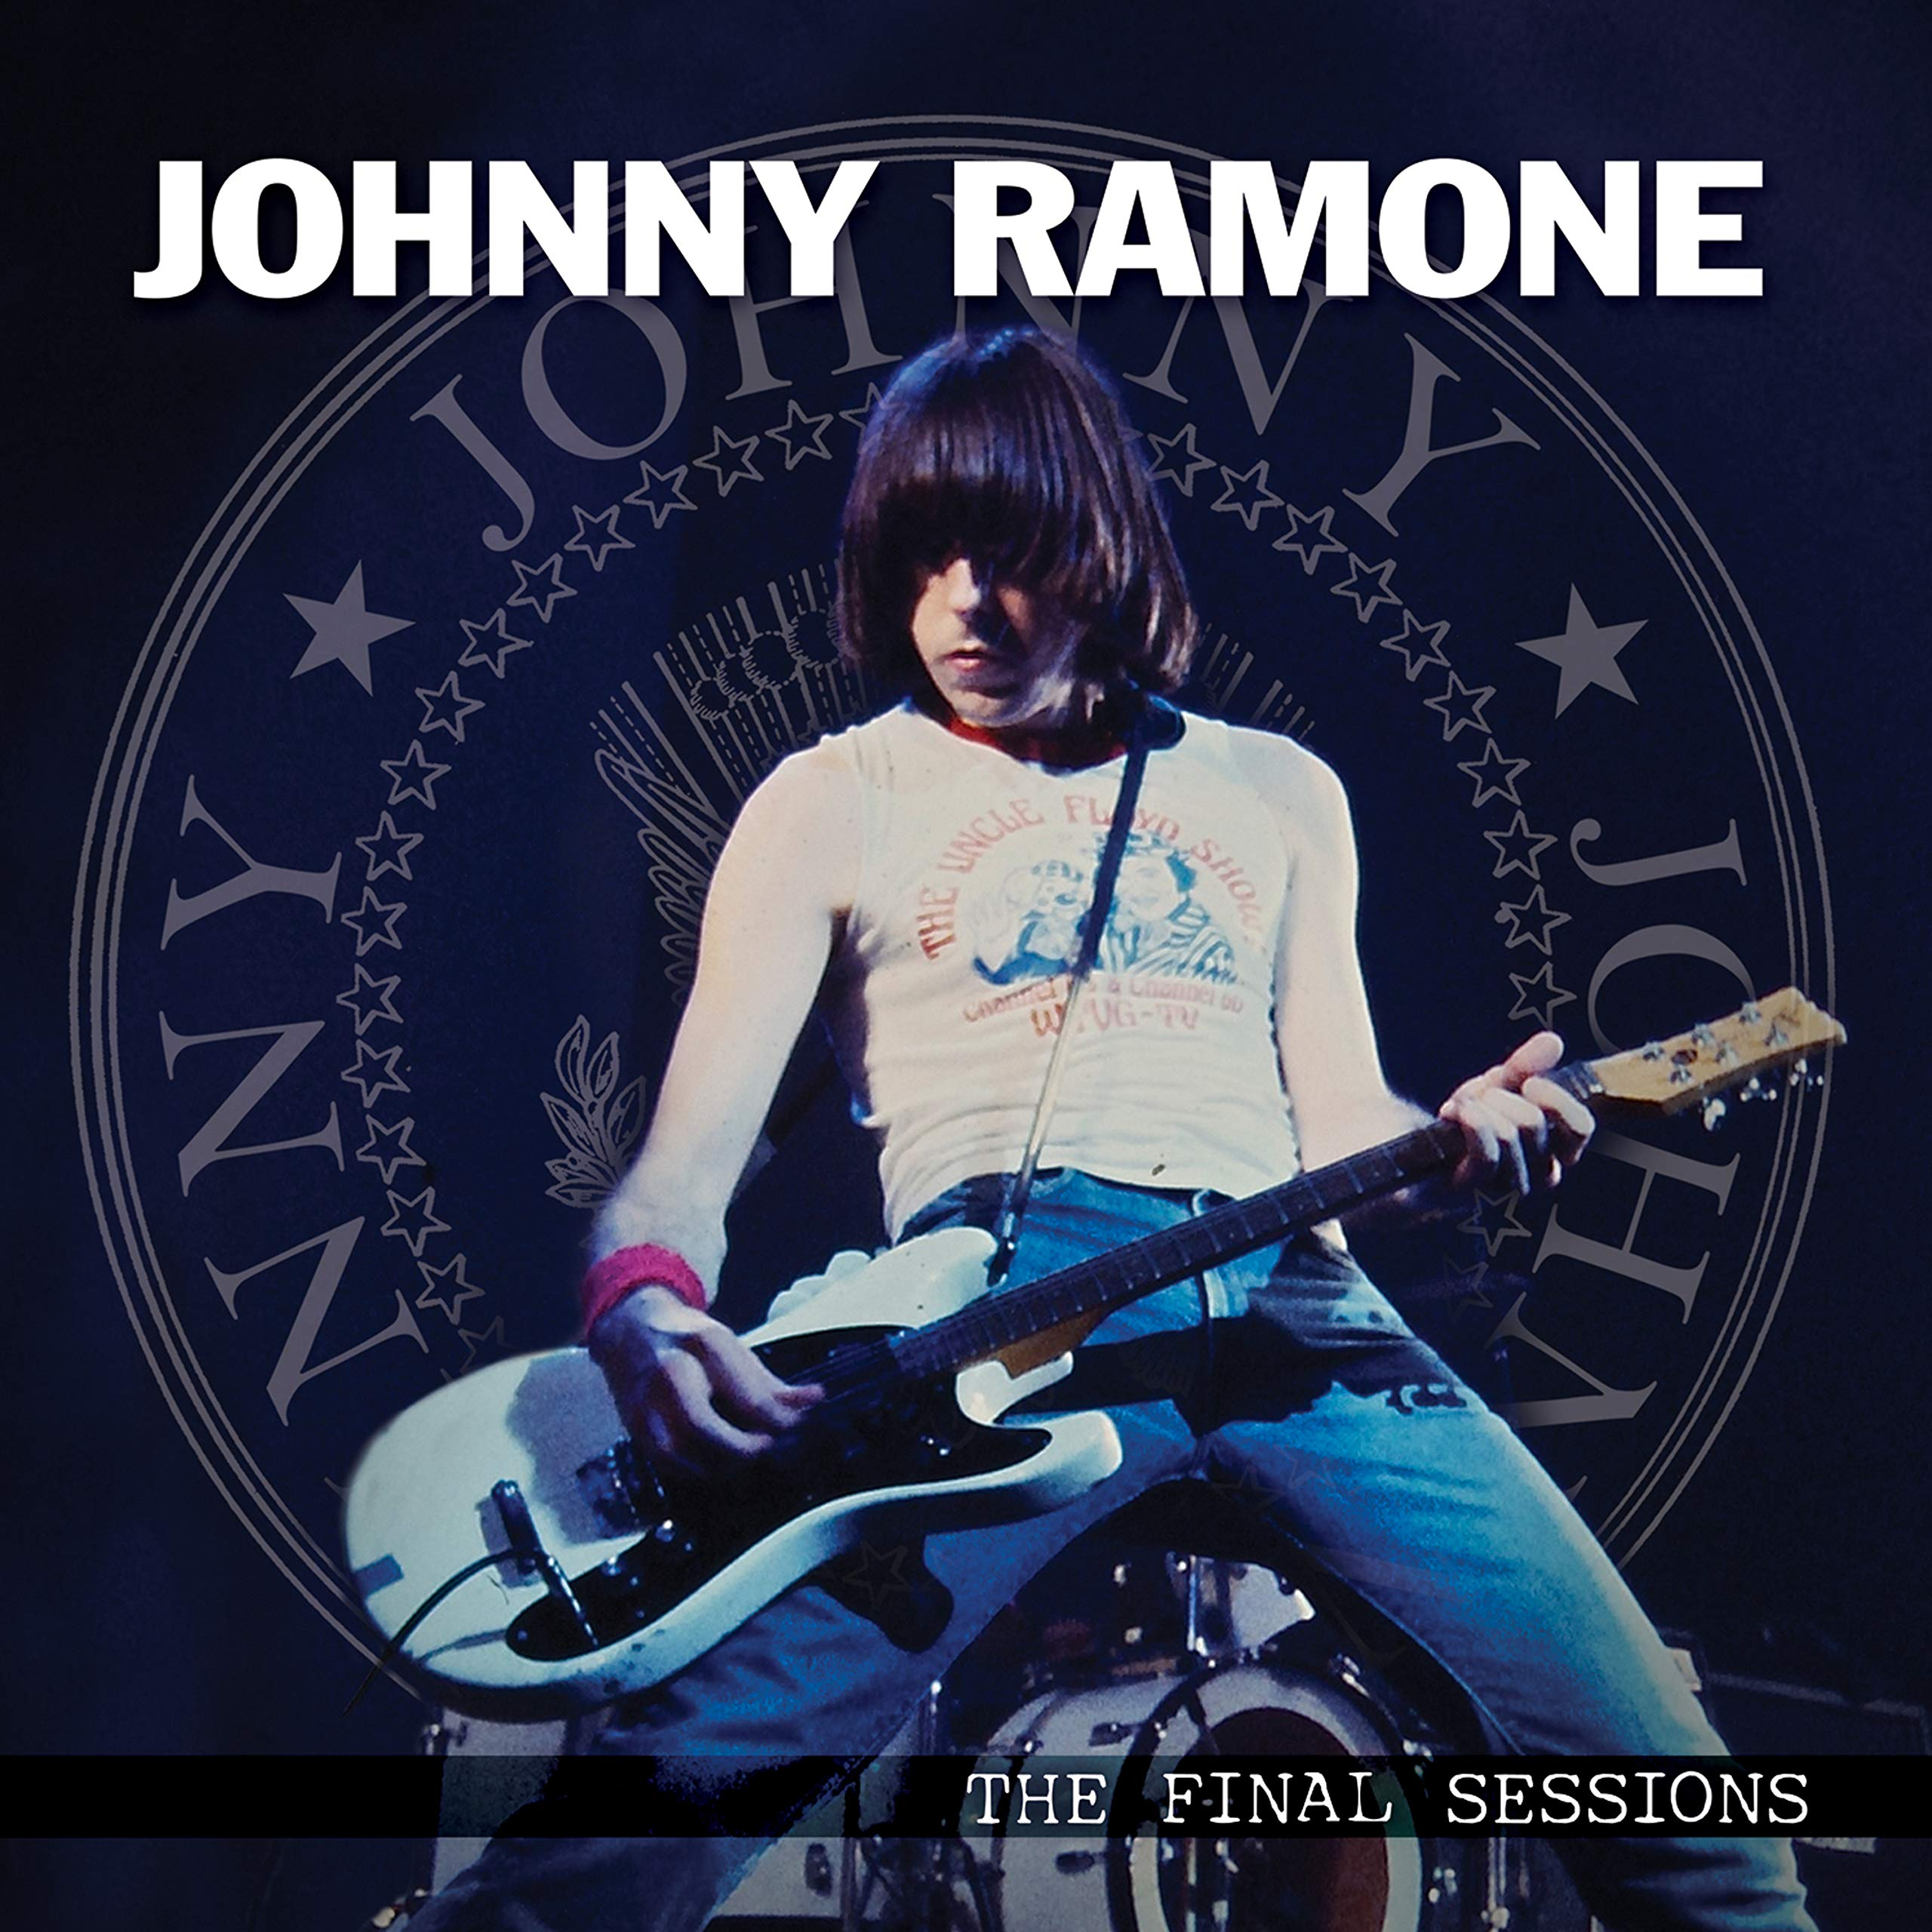 Vinilo : Johnny Ramone - The Final Sessions (Purple, Limited Edition)